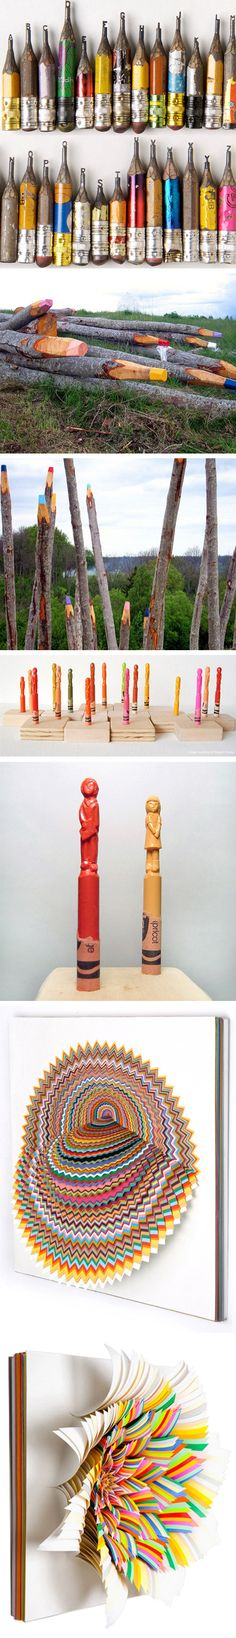 Love the idea of taking something old an dmaking it new! Recyled art!  Dalton Ghetti (alphabet carved pencils), Jonna Pohjalainen (log pencil crayon installation), Diem Chau (carved crayons), and Jennifer Stark (cut-paper sculptures).